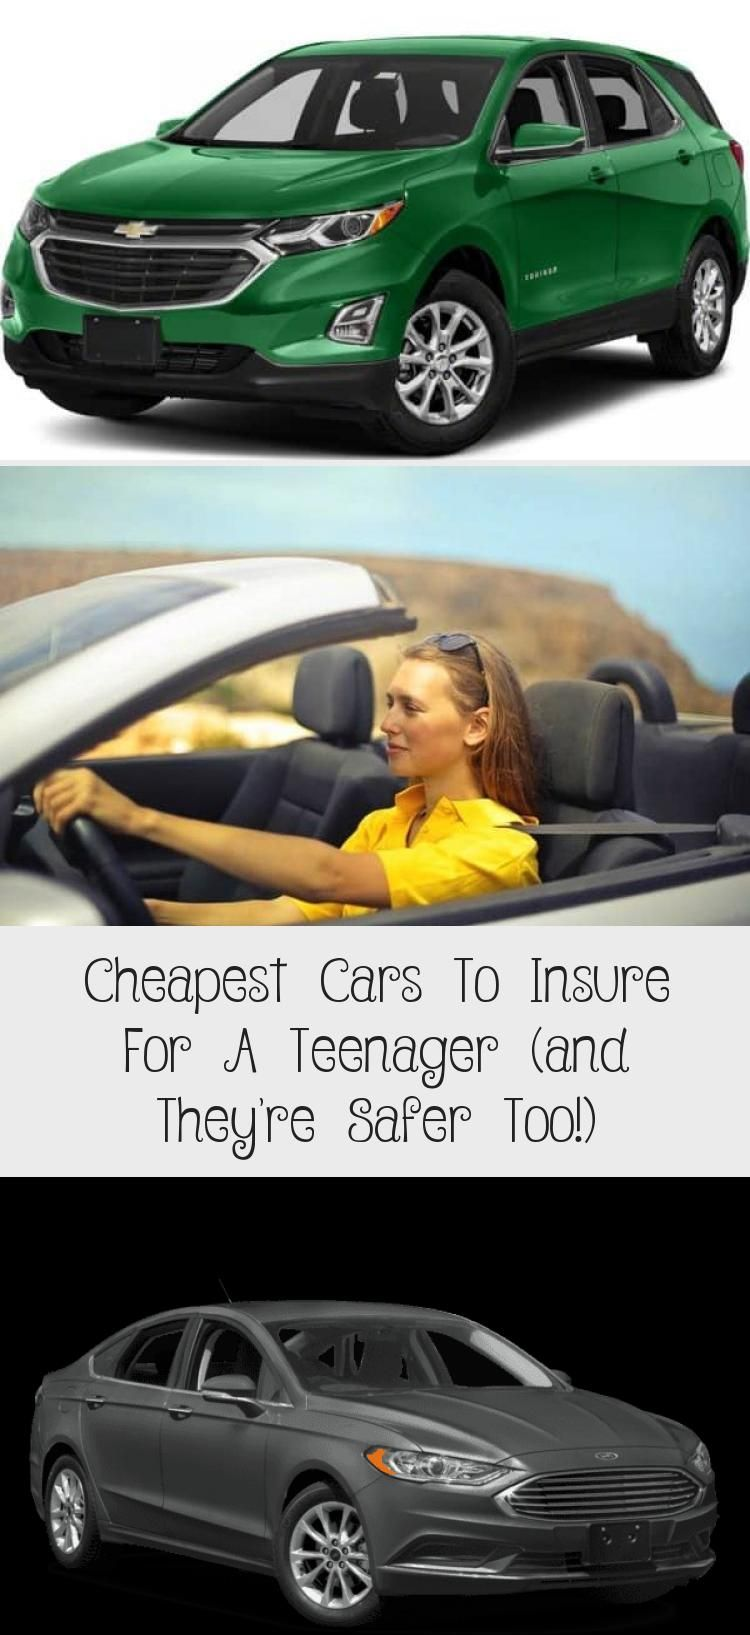 Cheapest Cars To Insure For A Teenager And They Re Safer Too Cheap Cars Expensive Cars Toyota Prius